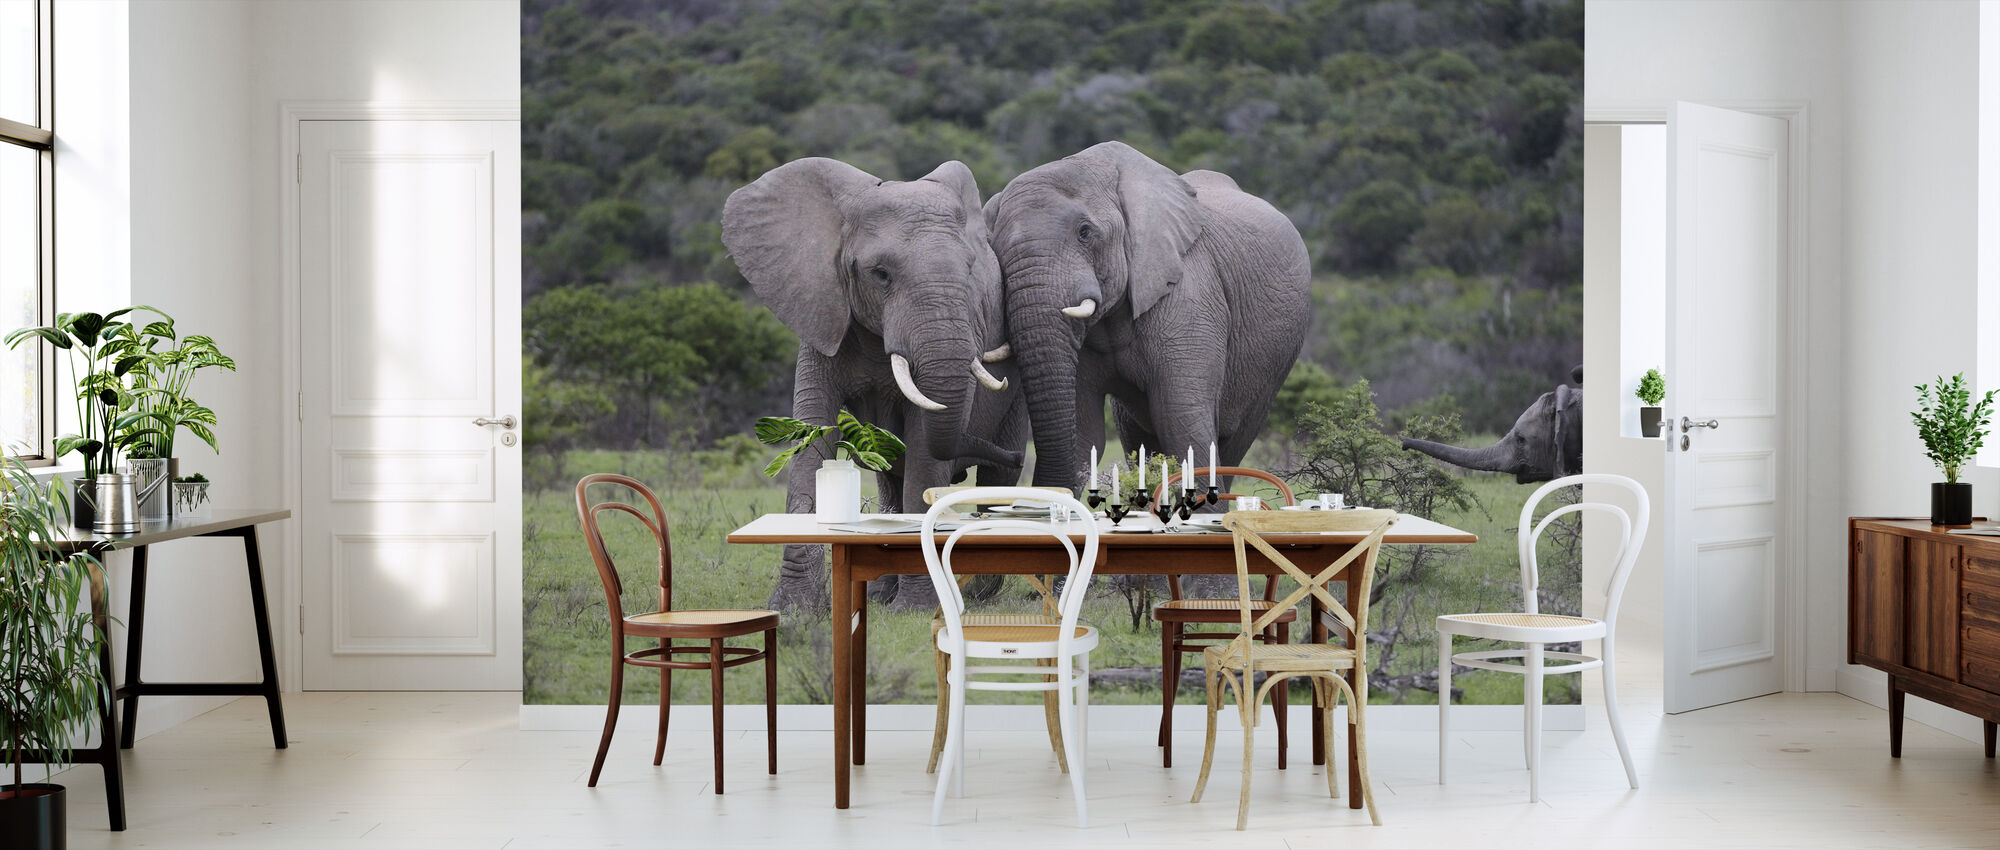 cuddling elephants trendige fototapete photowall. Black Bedroom Furniture Sets. Home Design Ideas